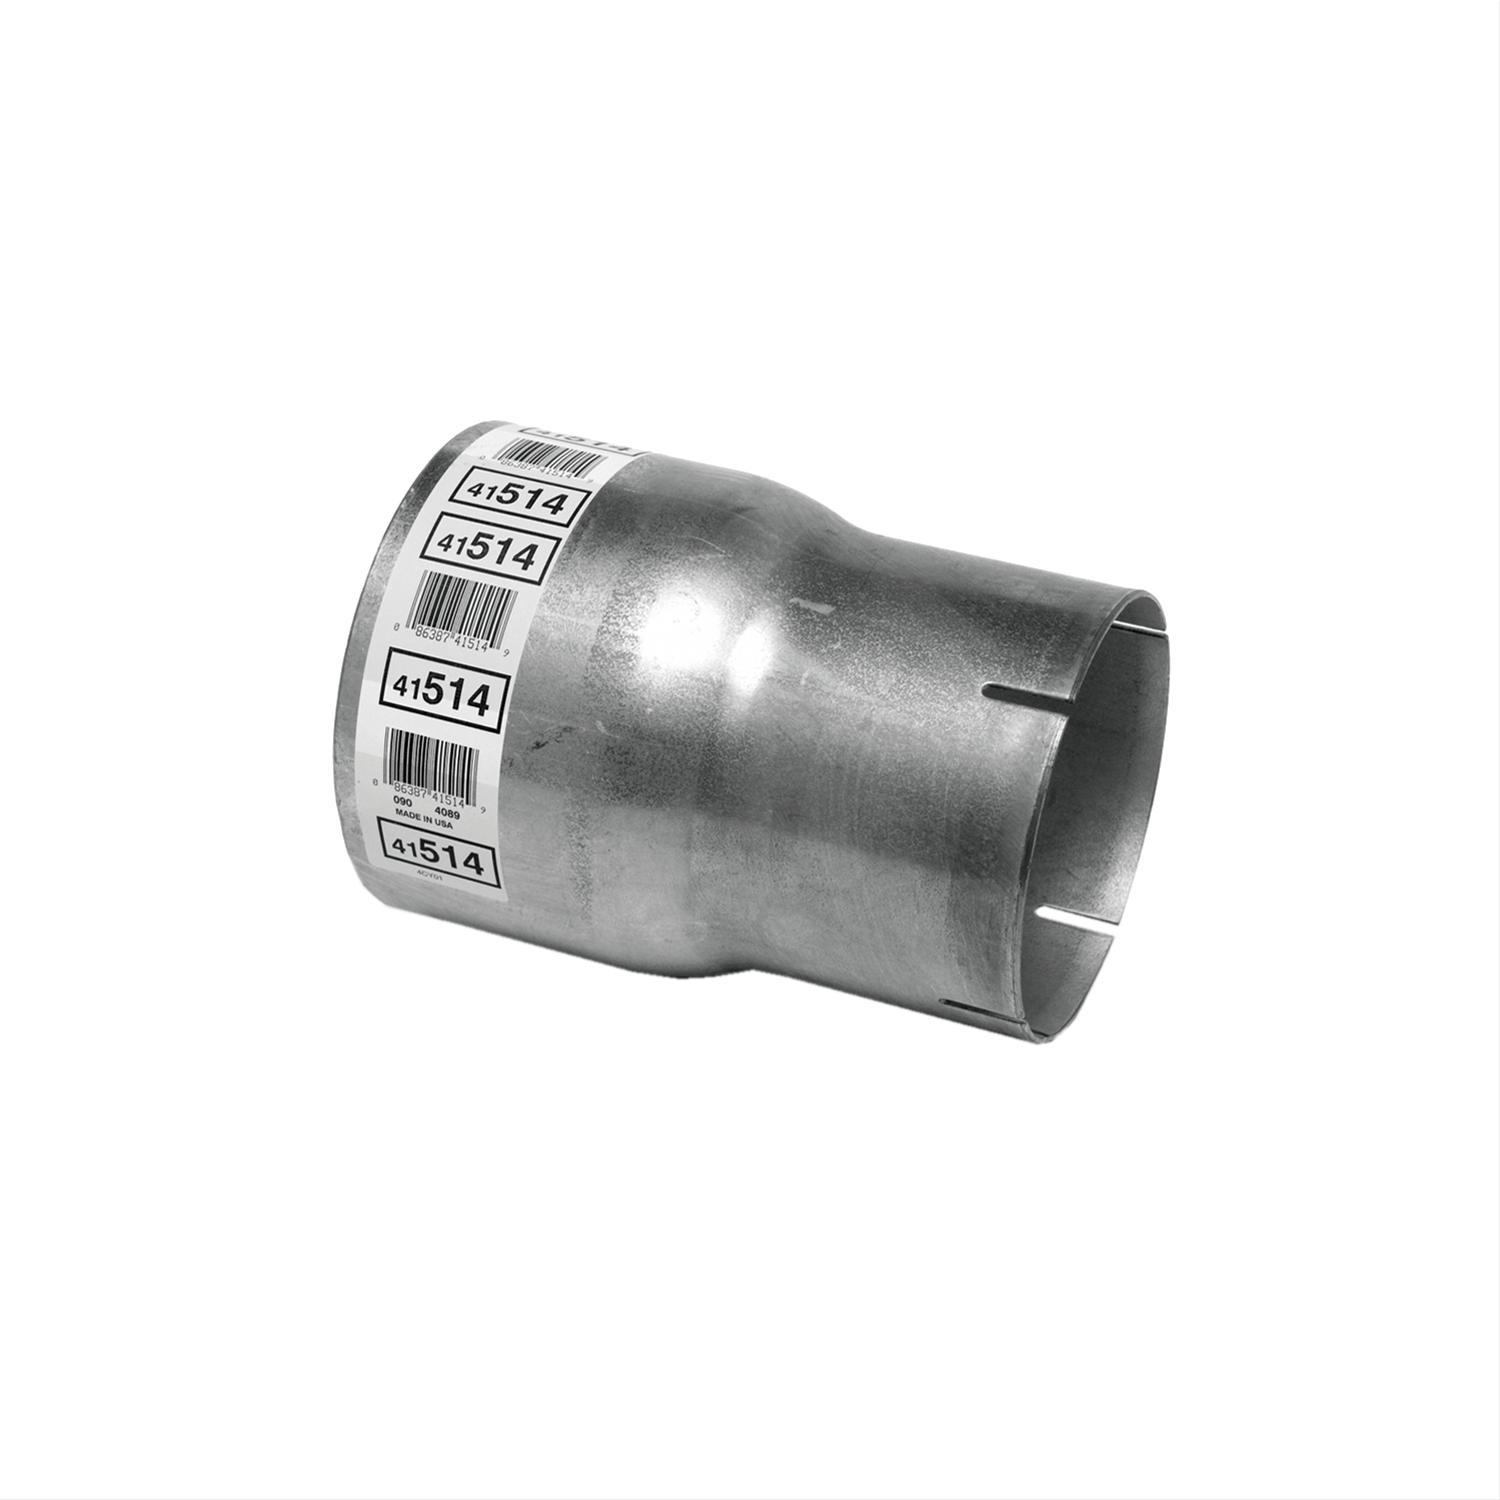 Walker Exhaust Pipe Adapters And Reducers 41514 Free